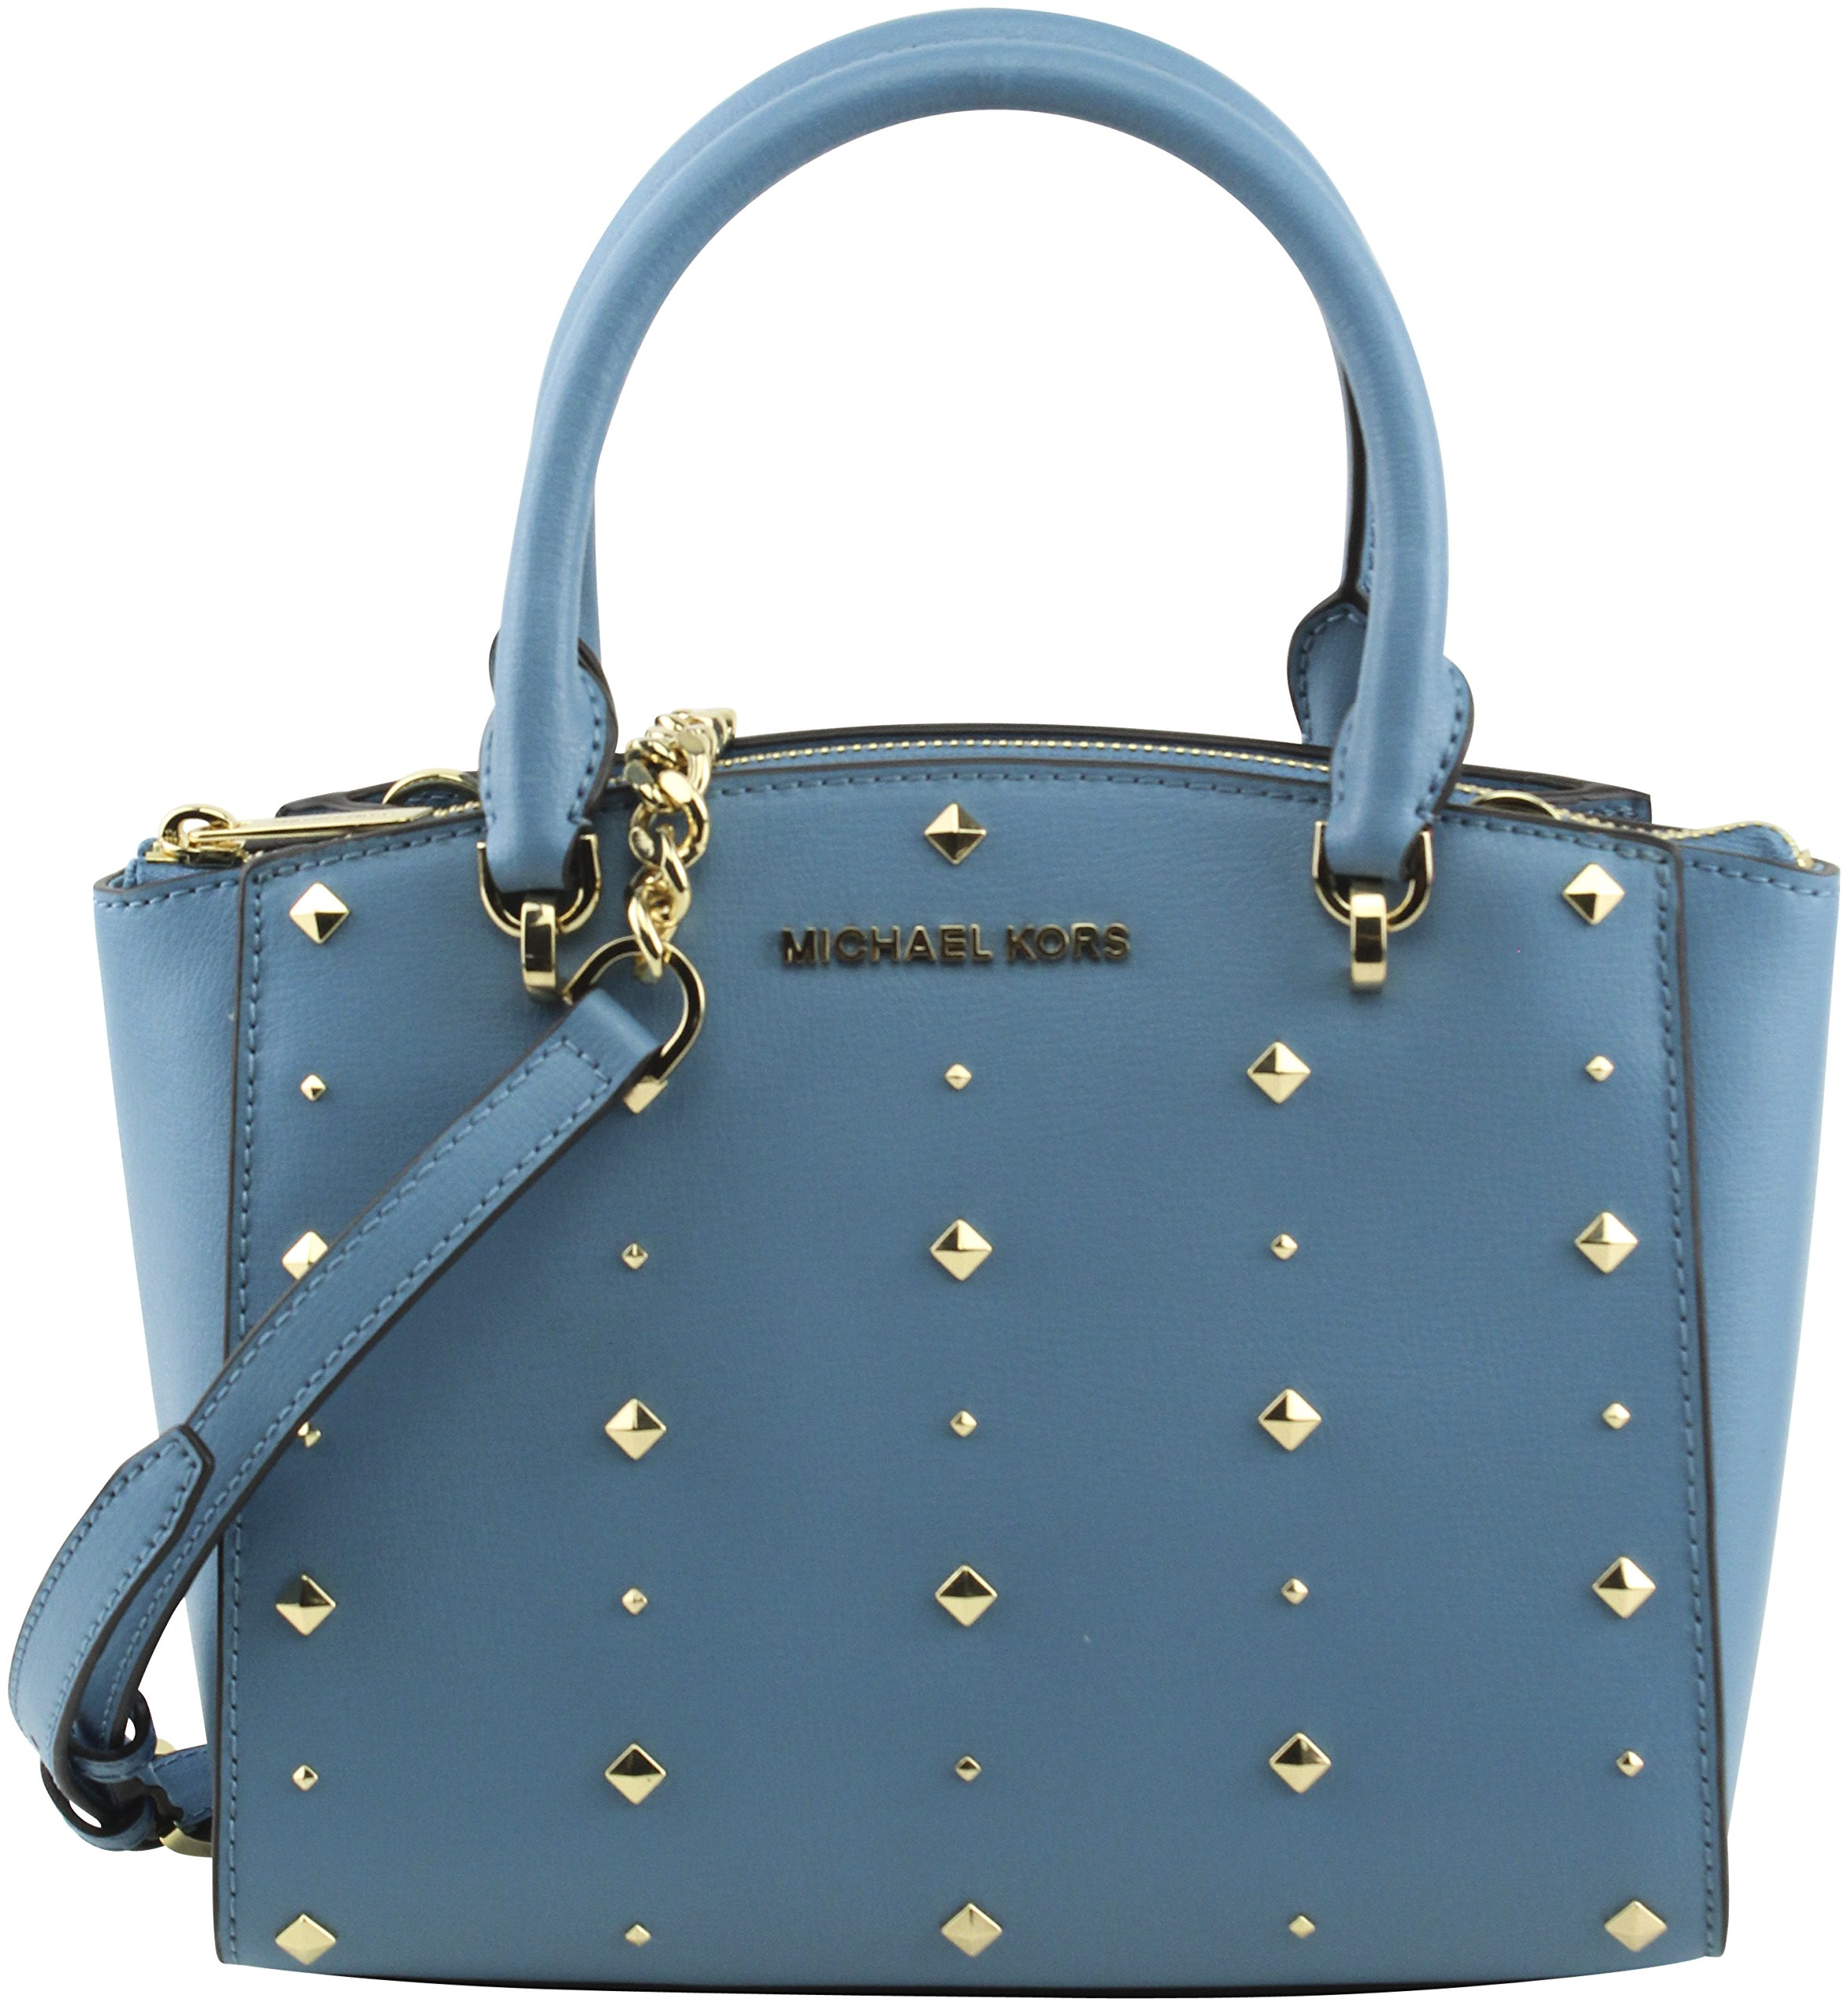 MICHAEL Michael Kors Women's Ellis Small Convertible Satchel Handbag Crossbody, Style 35H7GEOS5L, Sky Blue by Michael Kors